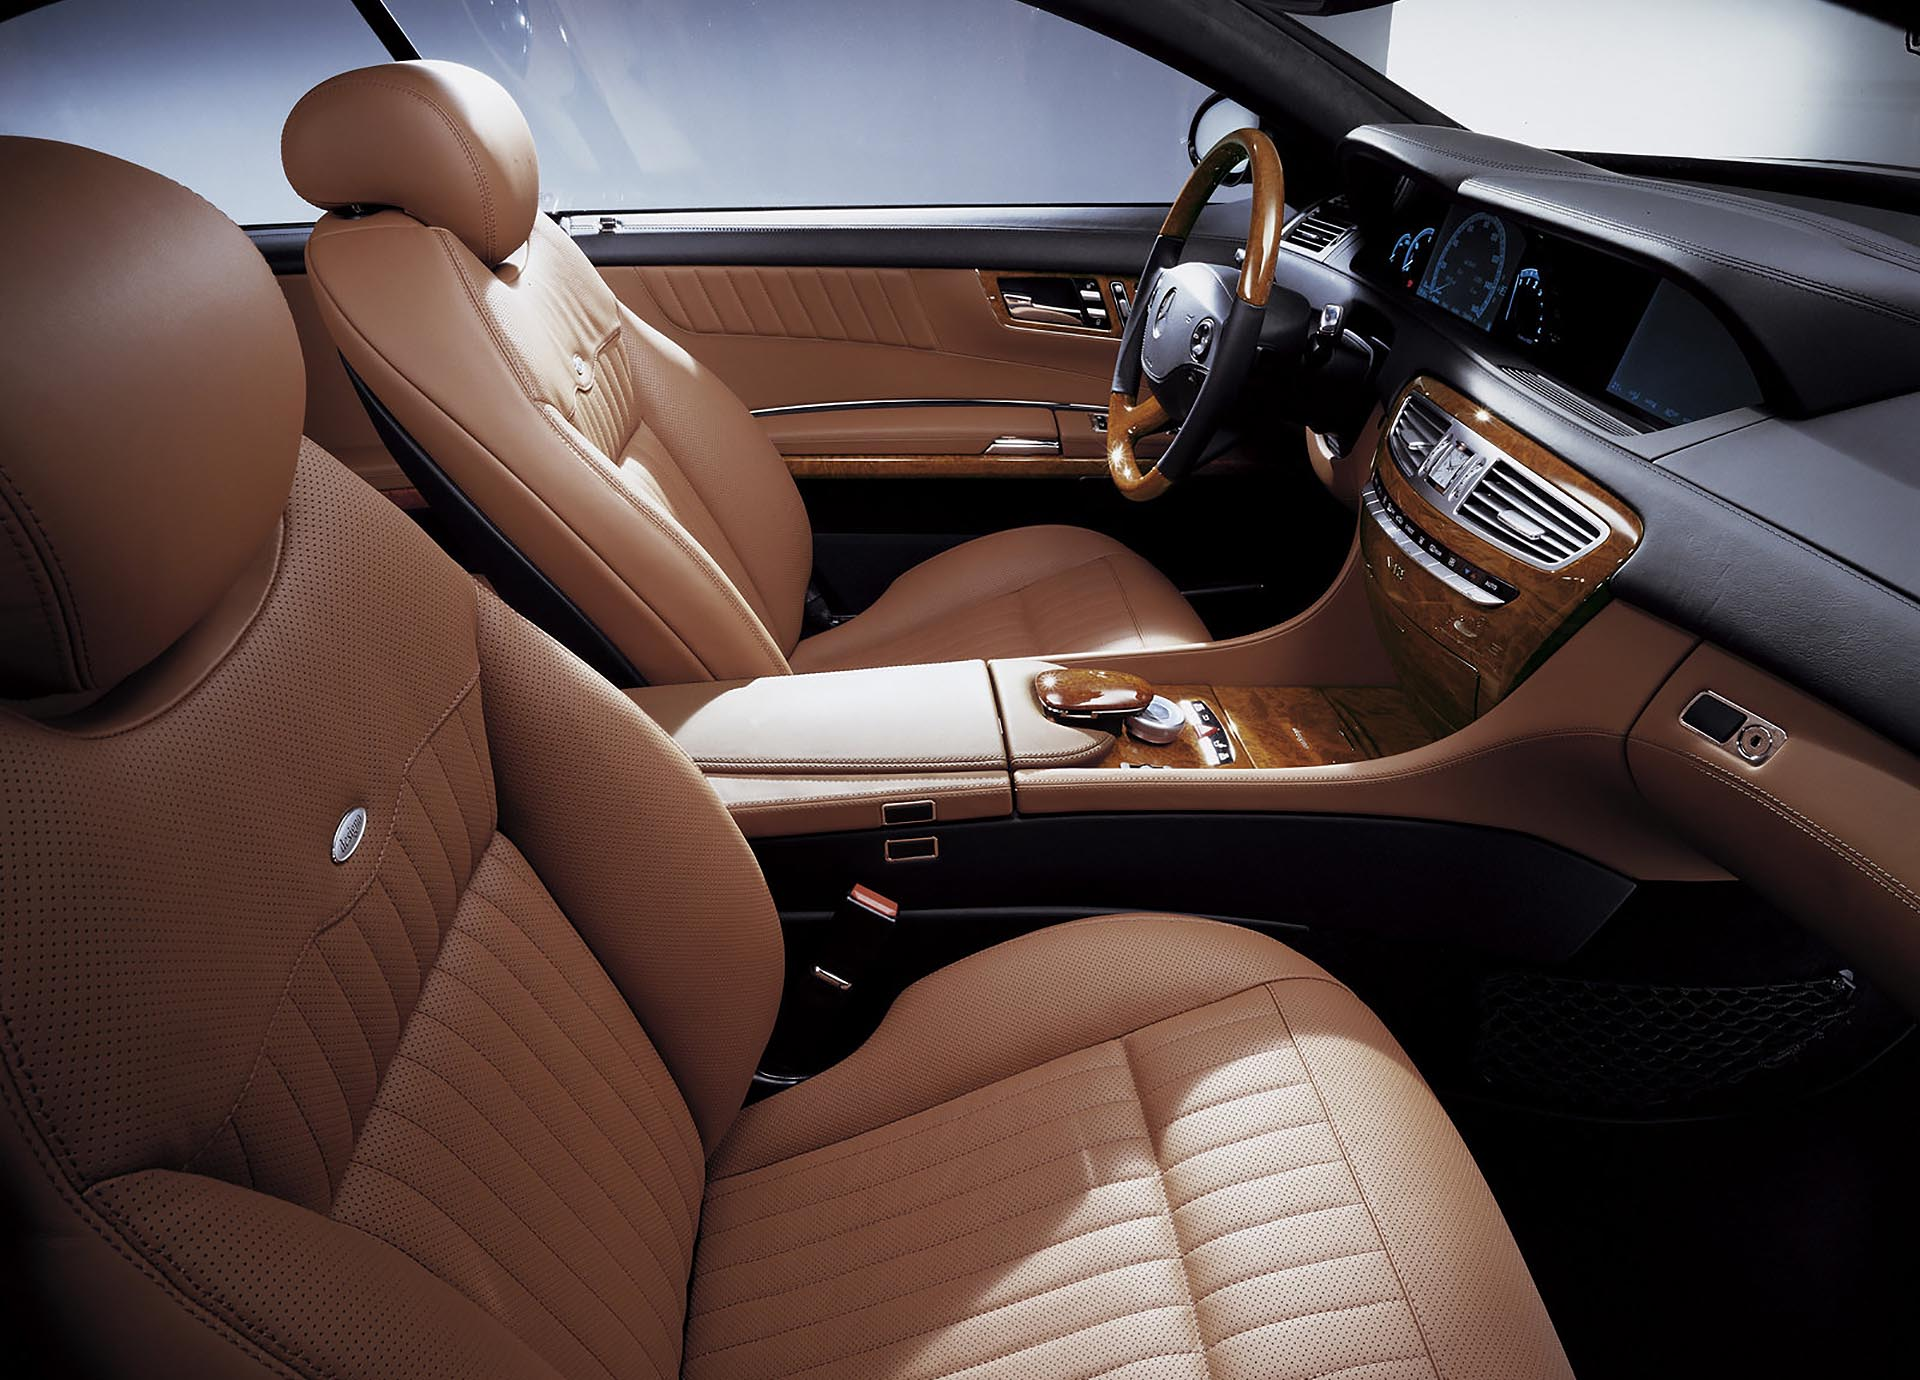 23_Mercedes-Benz CL600 V12 biturbo interior